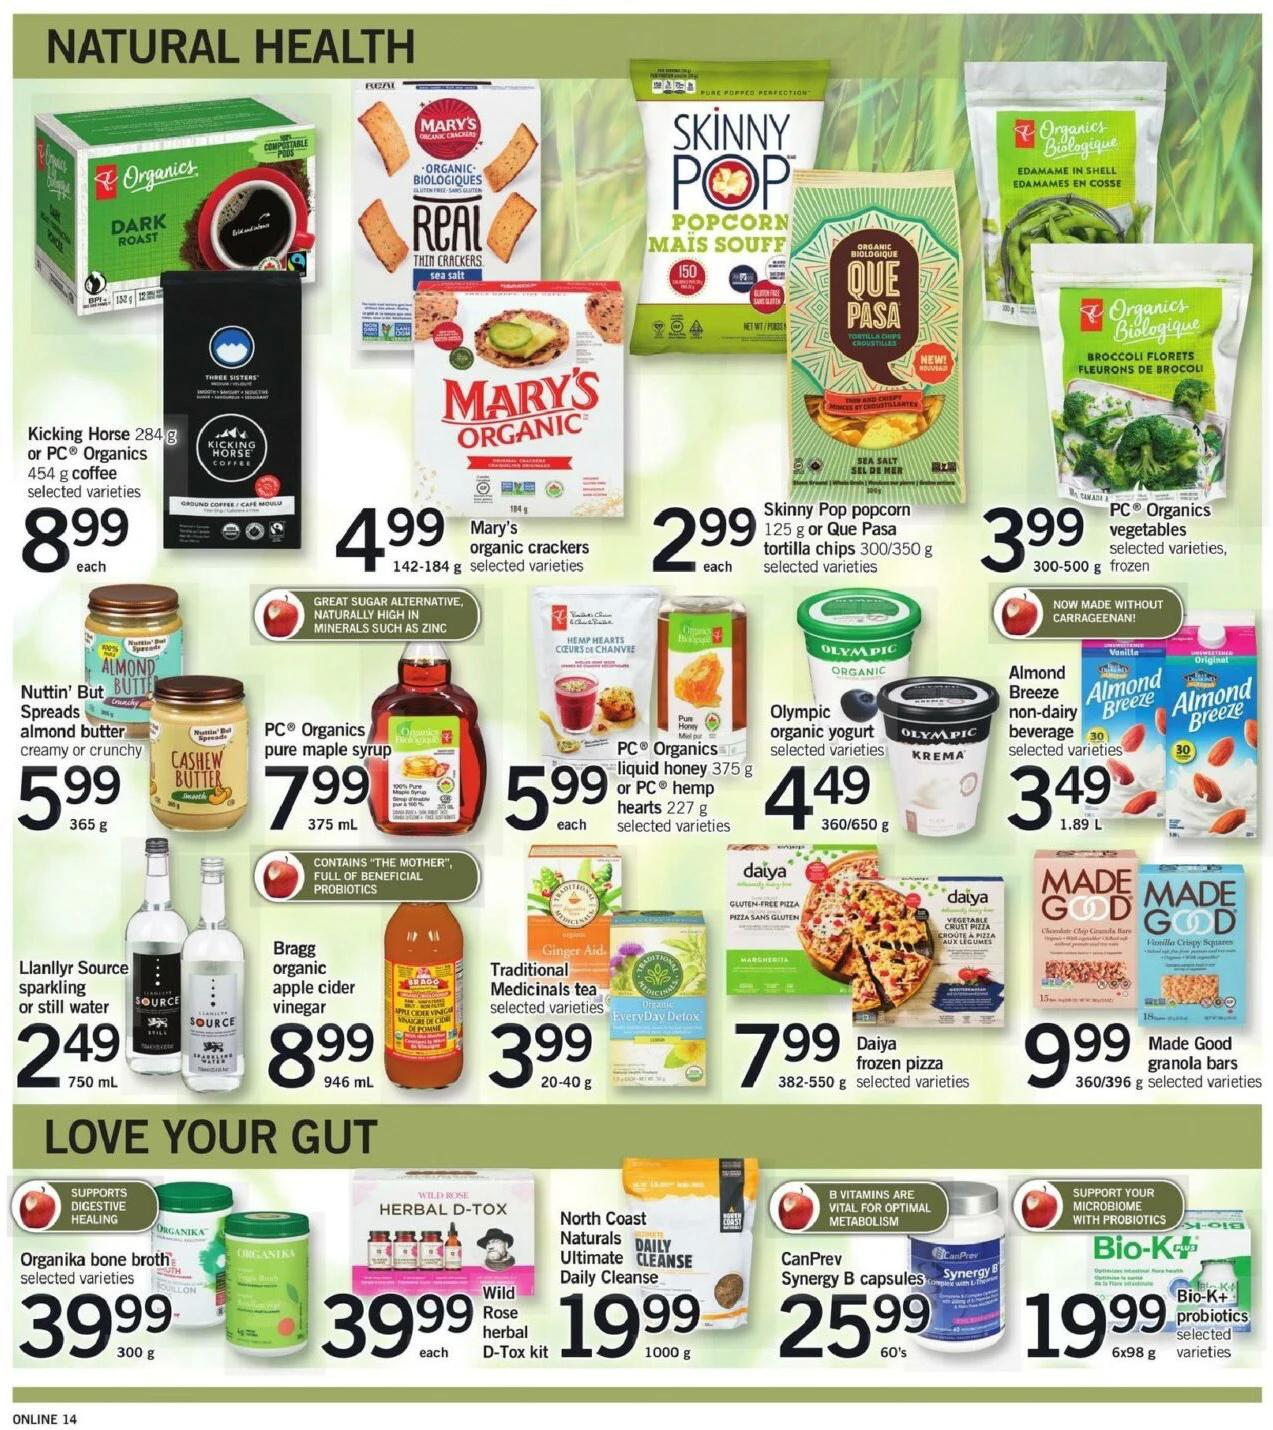 Fortinos - Weekly Flyer Specials - Page 14